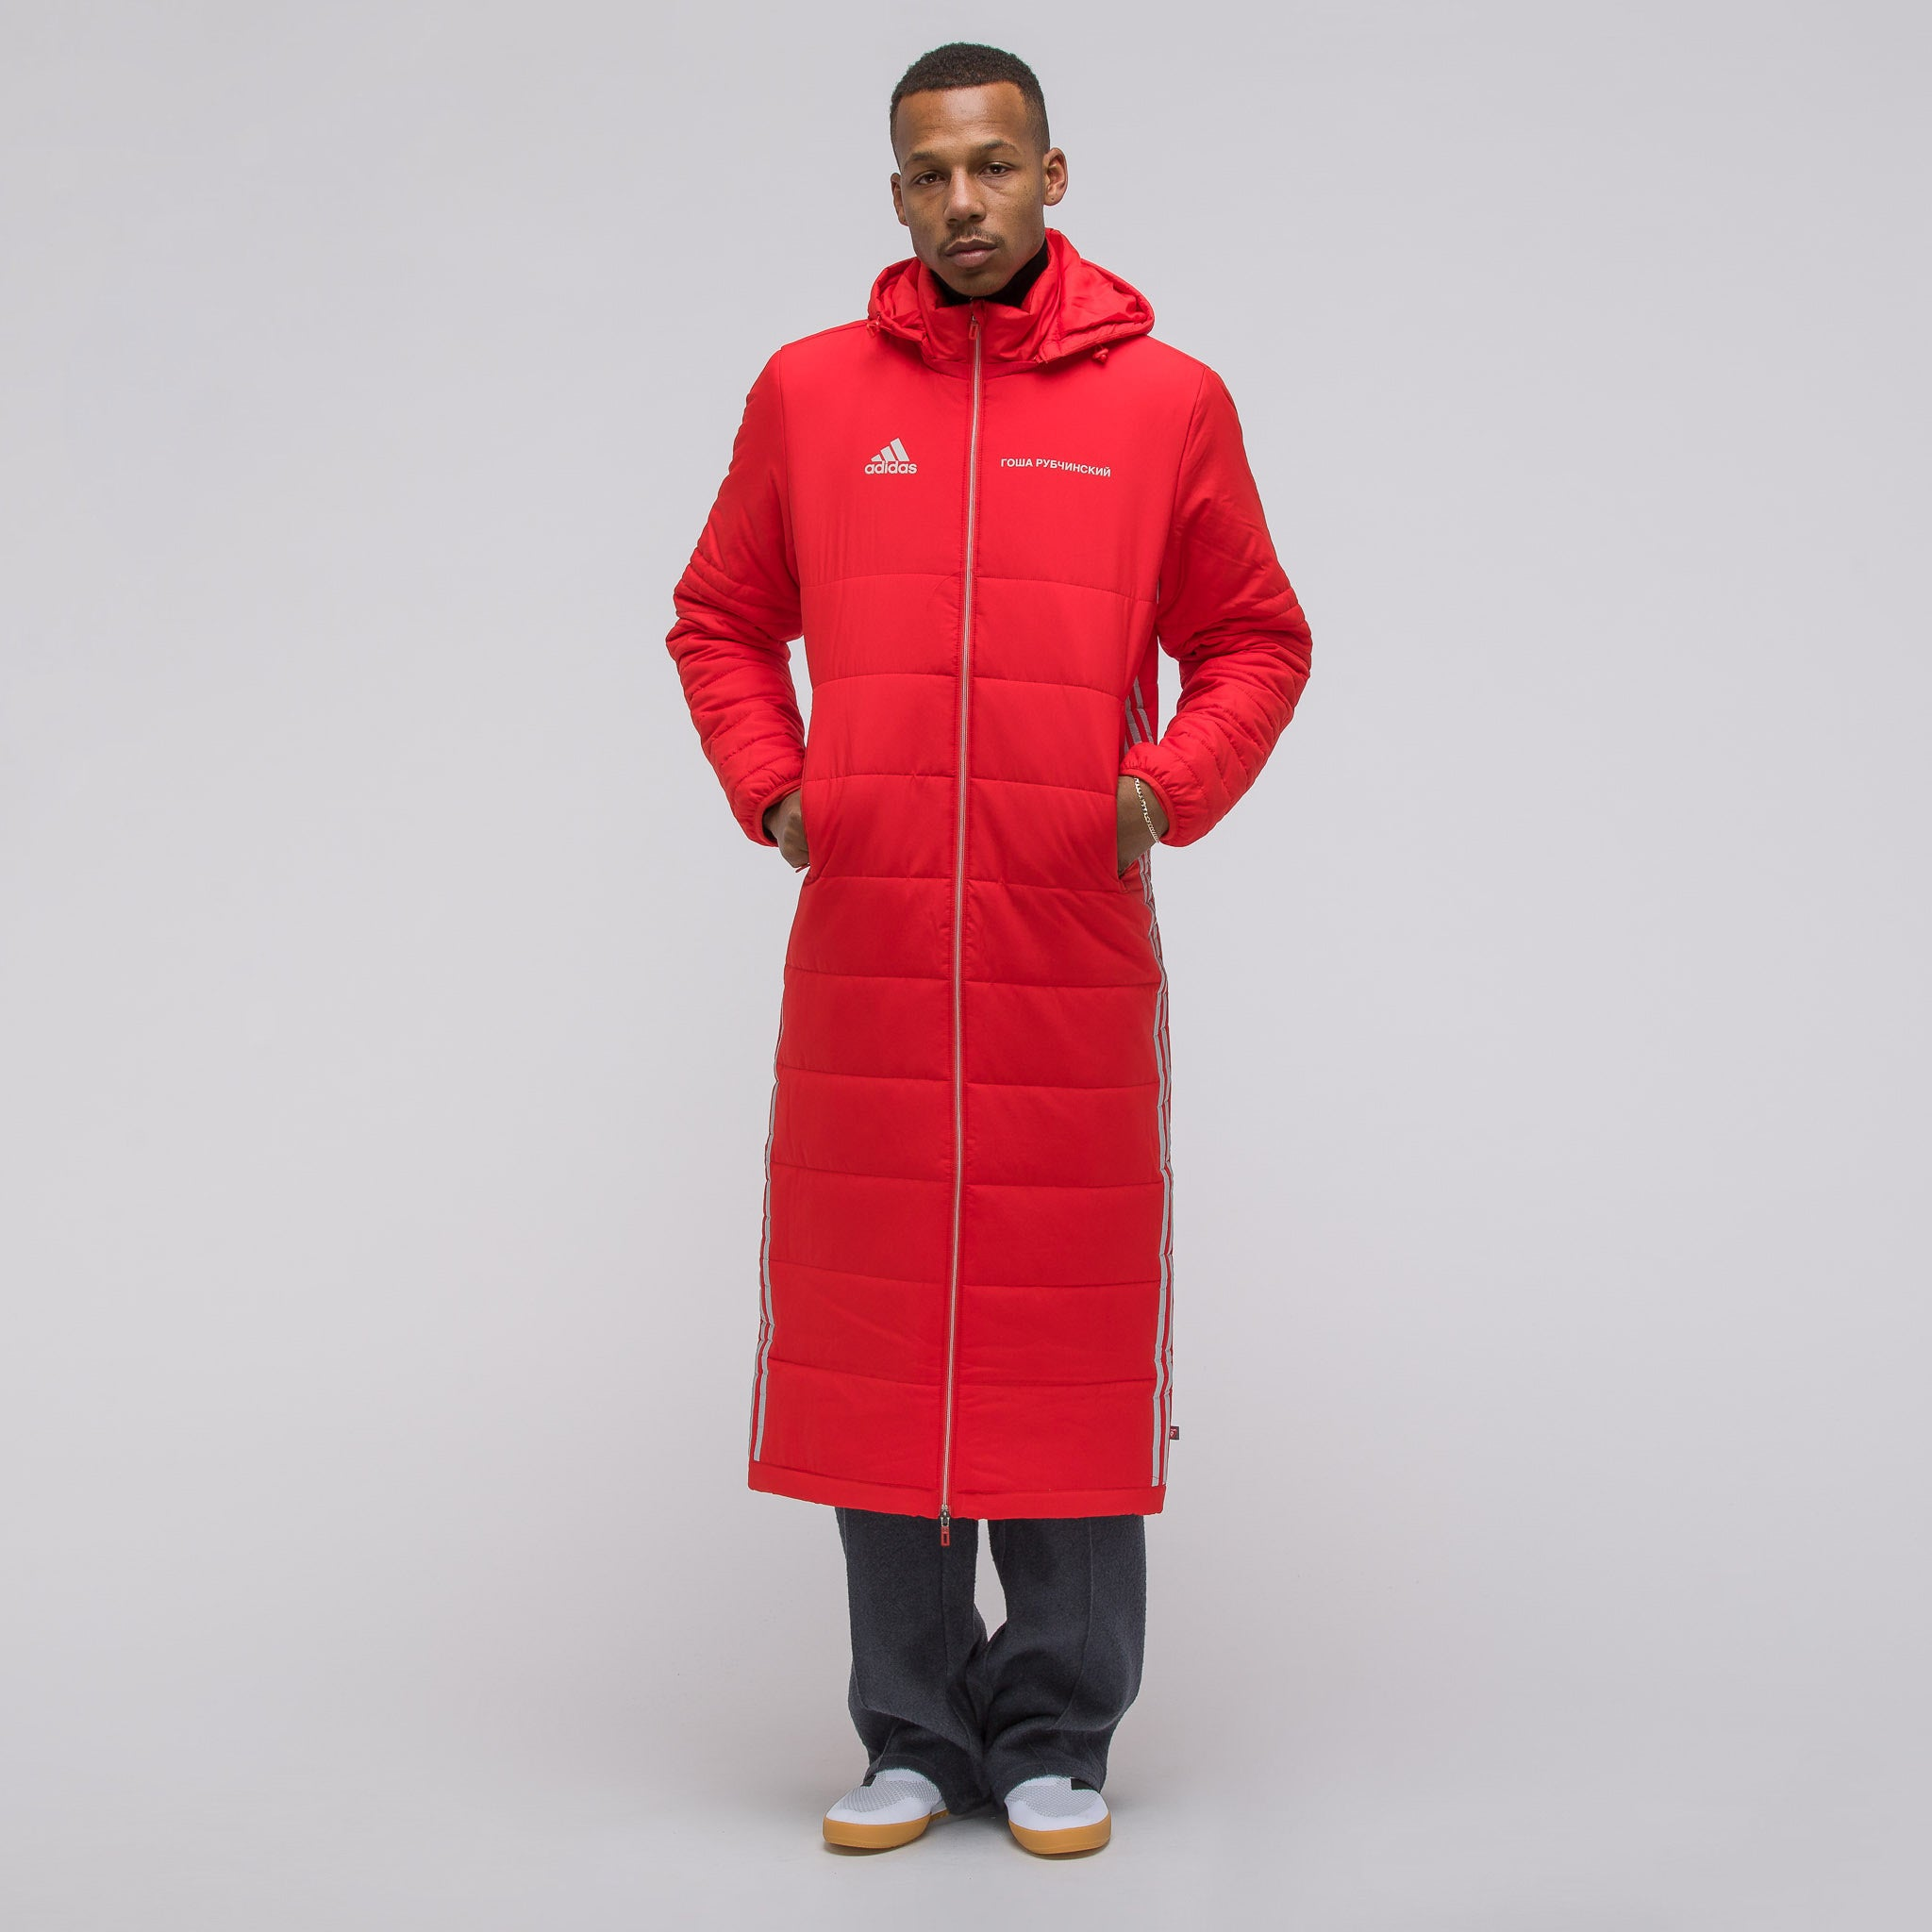 x adidas Wind Coat in Red